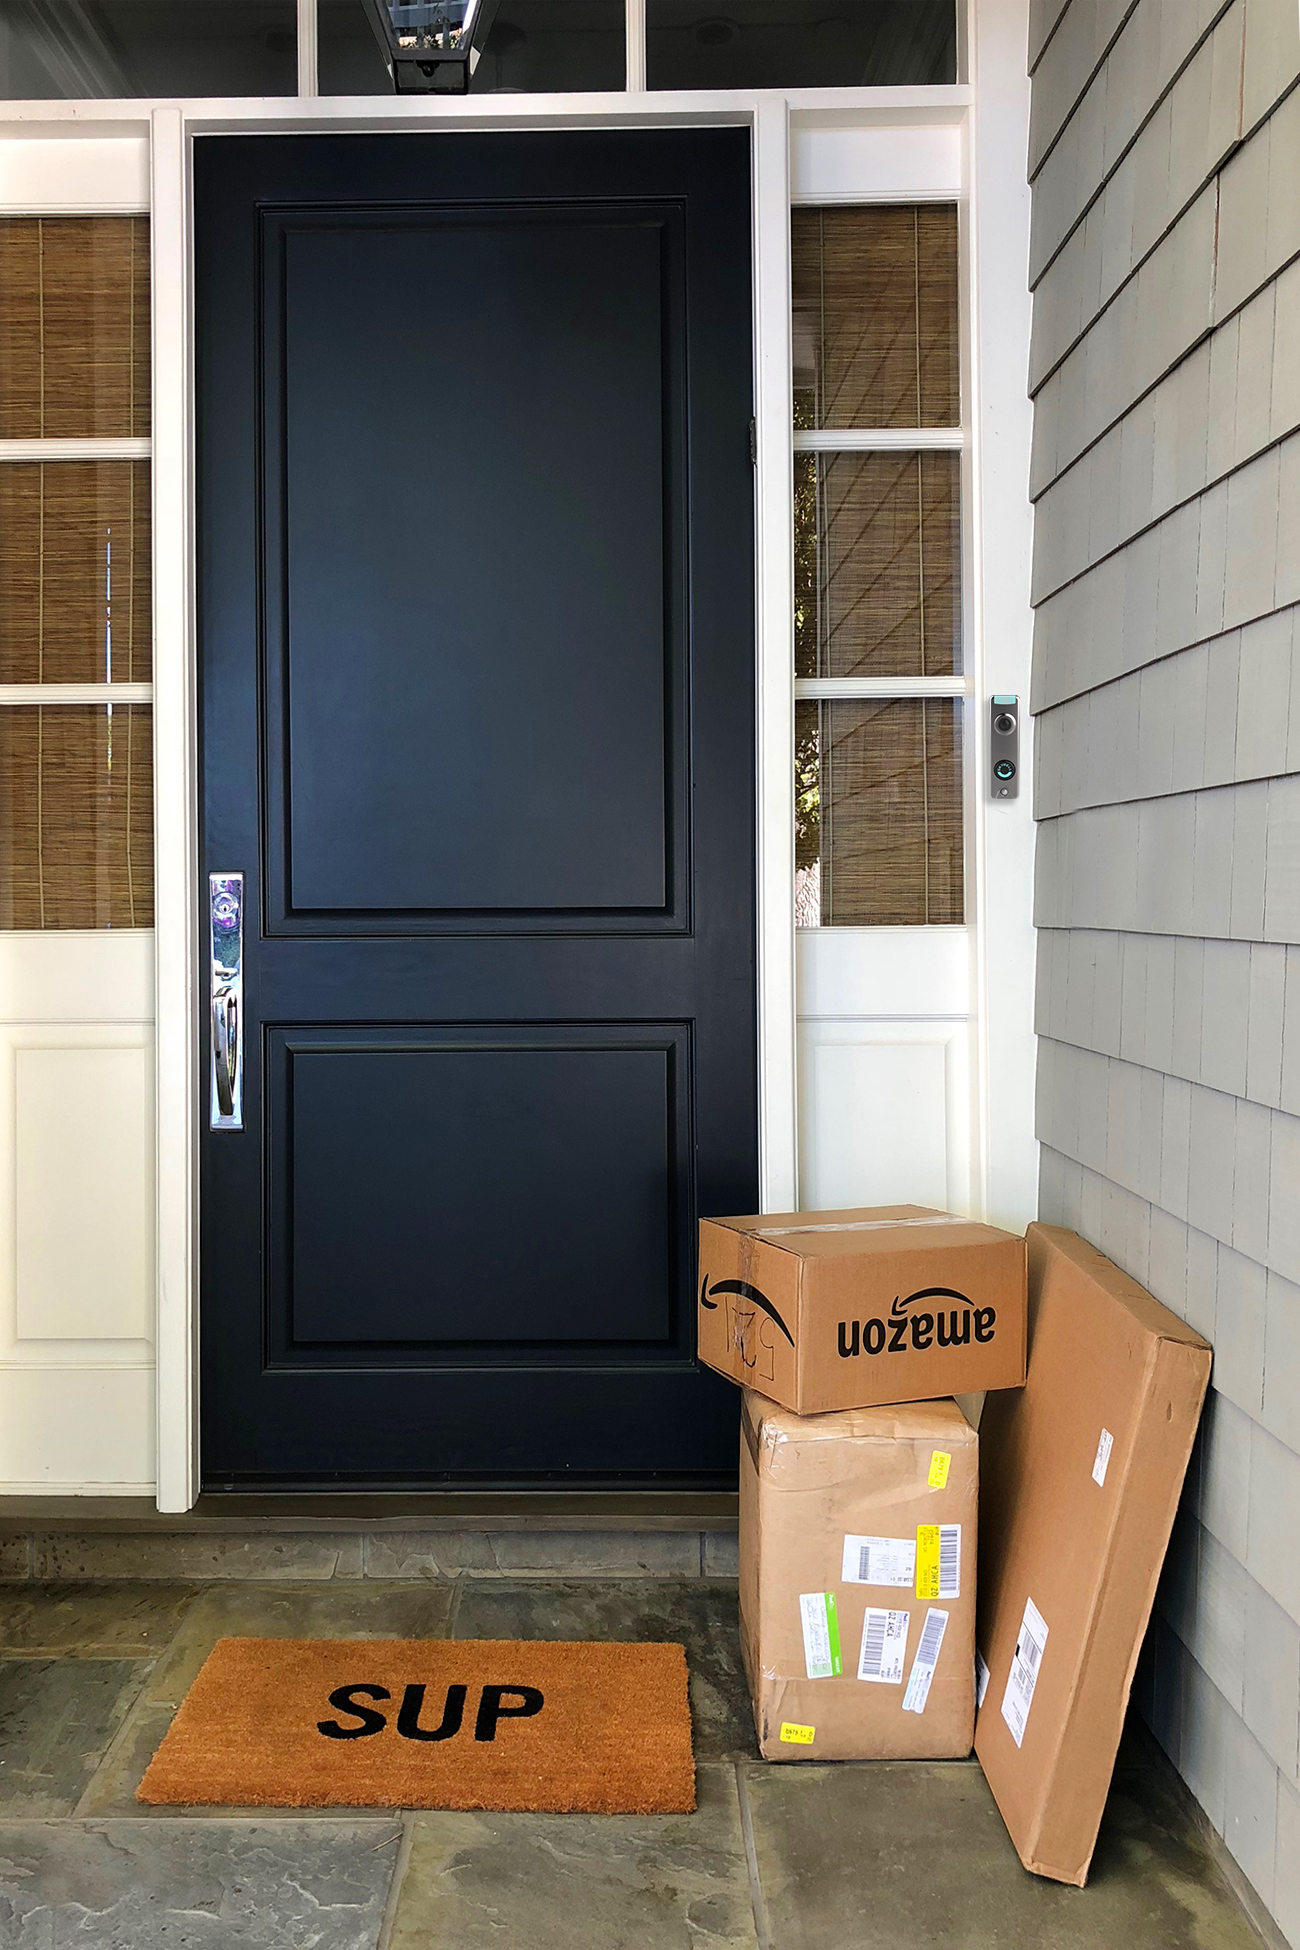 The Best Way To Prevent Holiday Package Theft Carley K